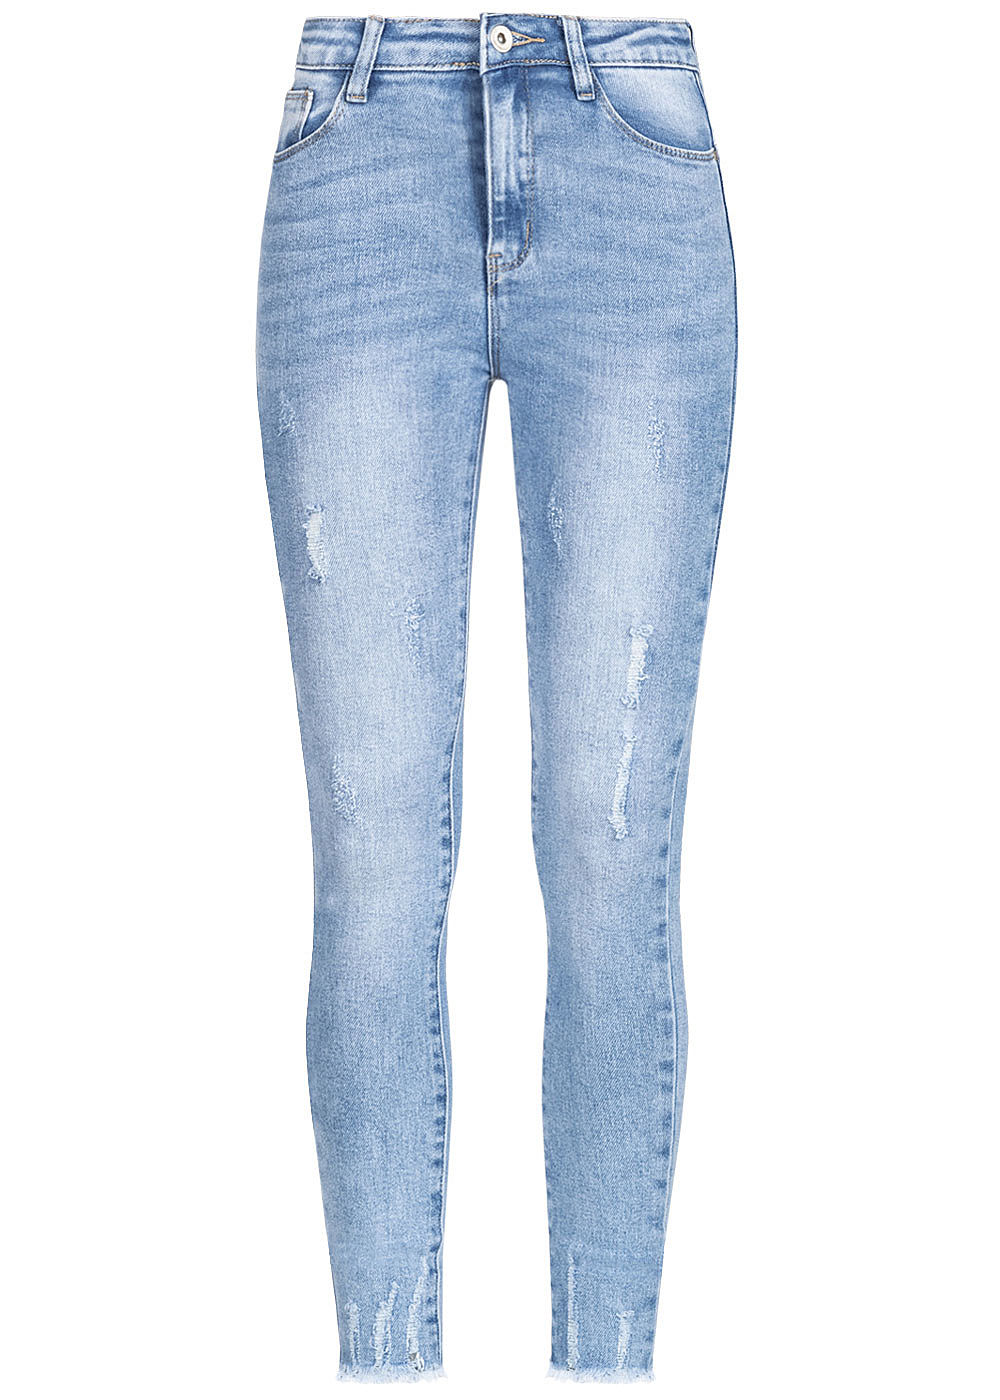 Hailys Damen Ankle Jeans Hose High Waist 5-Pockets Fransen Destroy Look denim blau - Art.-Nr.: 20052119